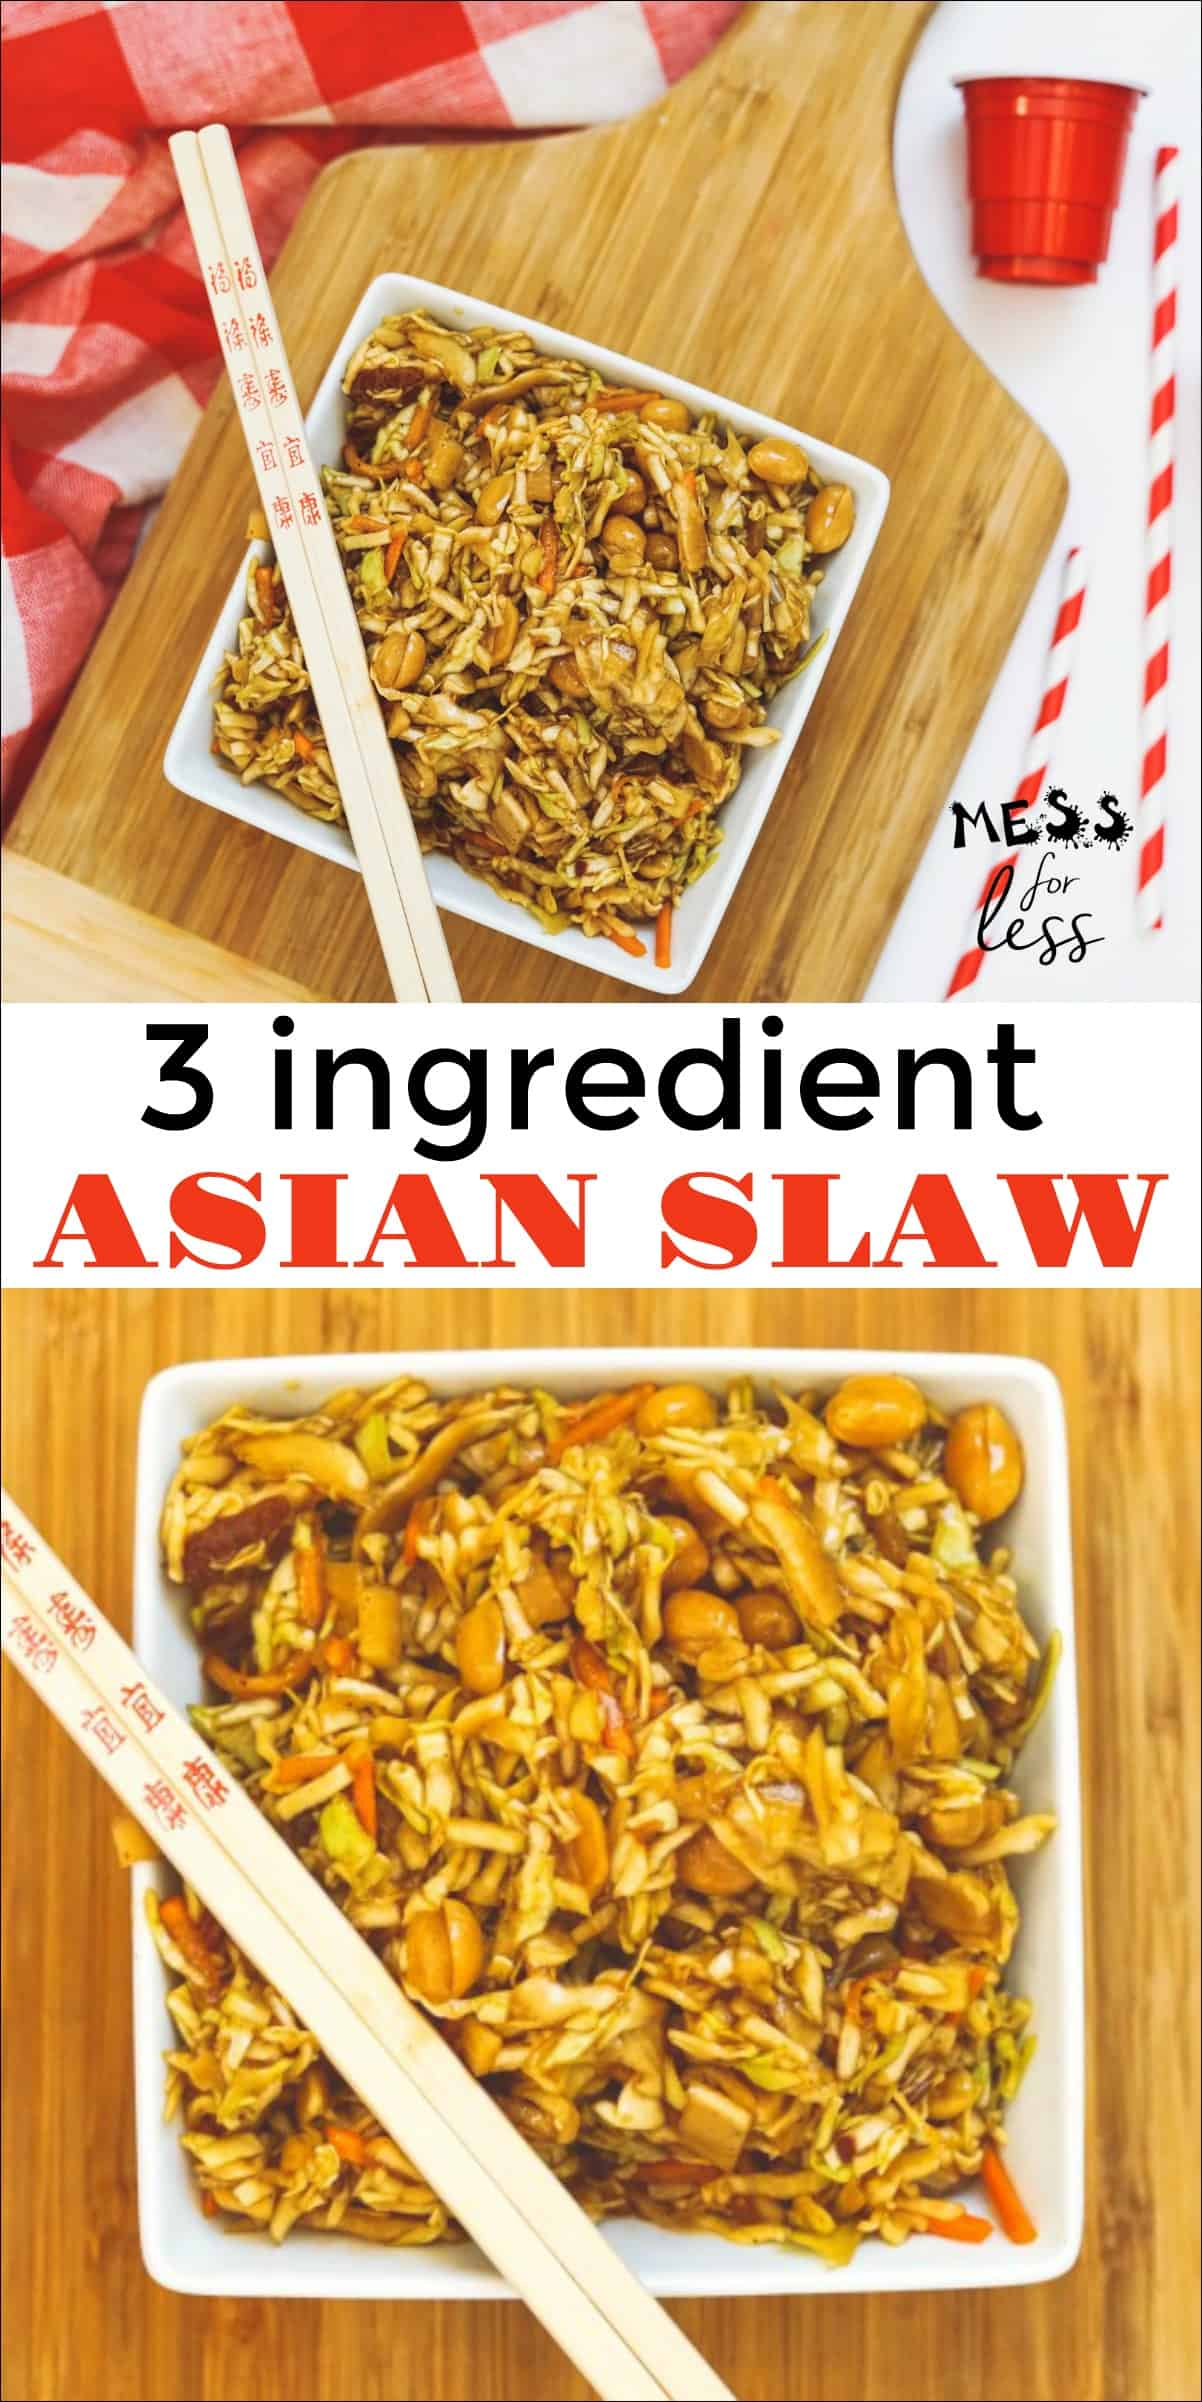 This 3 Ingredient Asian Slaw Recipe makes a great side dish. You'll love all the different flavors and textures going on. It can be served as a side to an Asian inspired meal or with chicken as a meal. You won't believe how easy it is to make! #asianslaw #Asiansalad